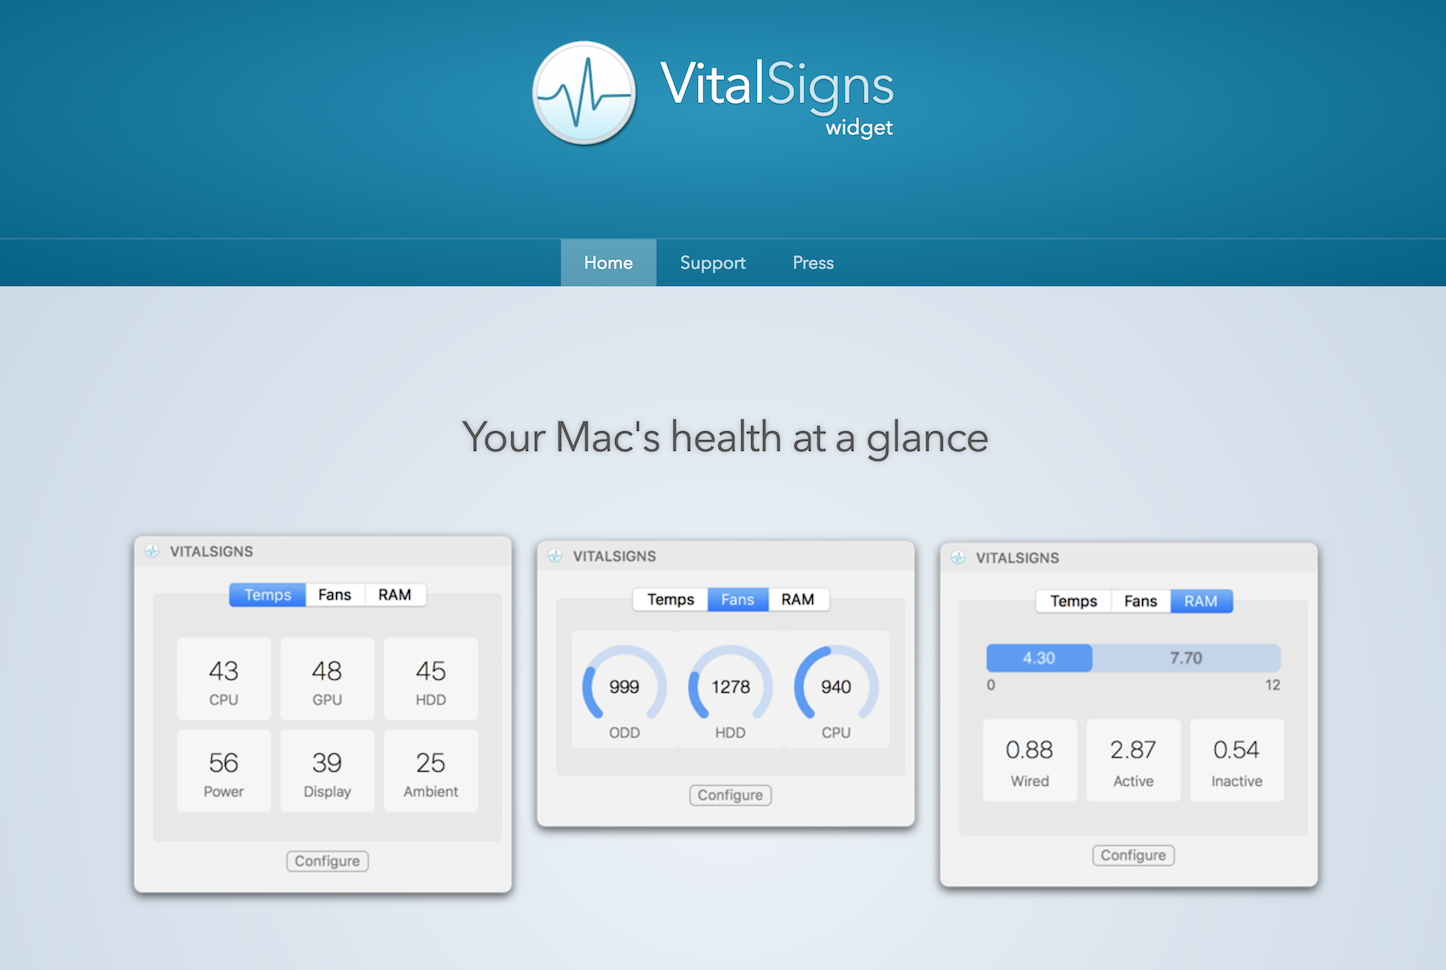 VitalSigns for Mac Widget